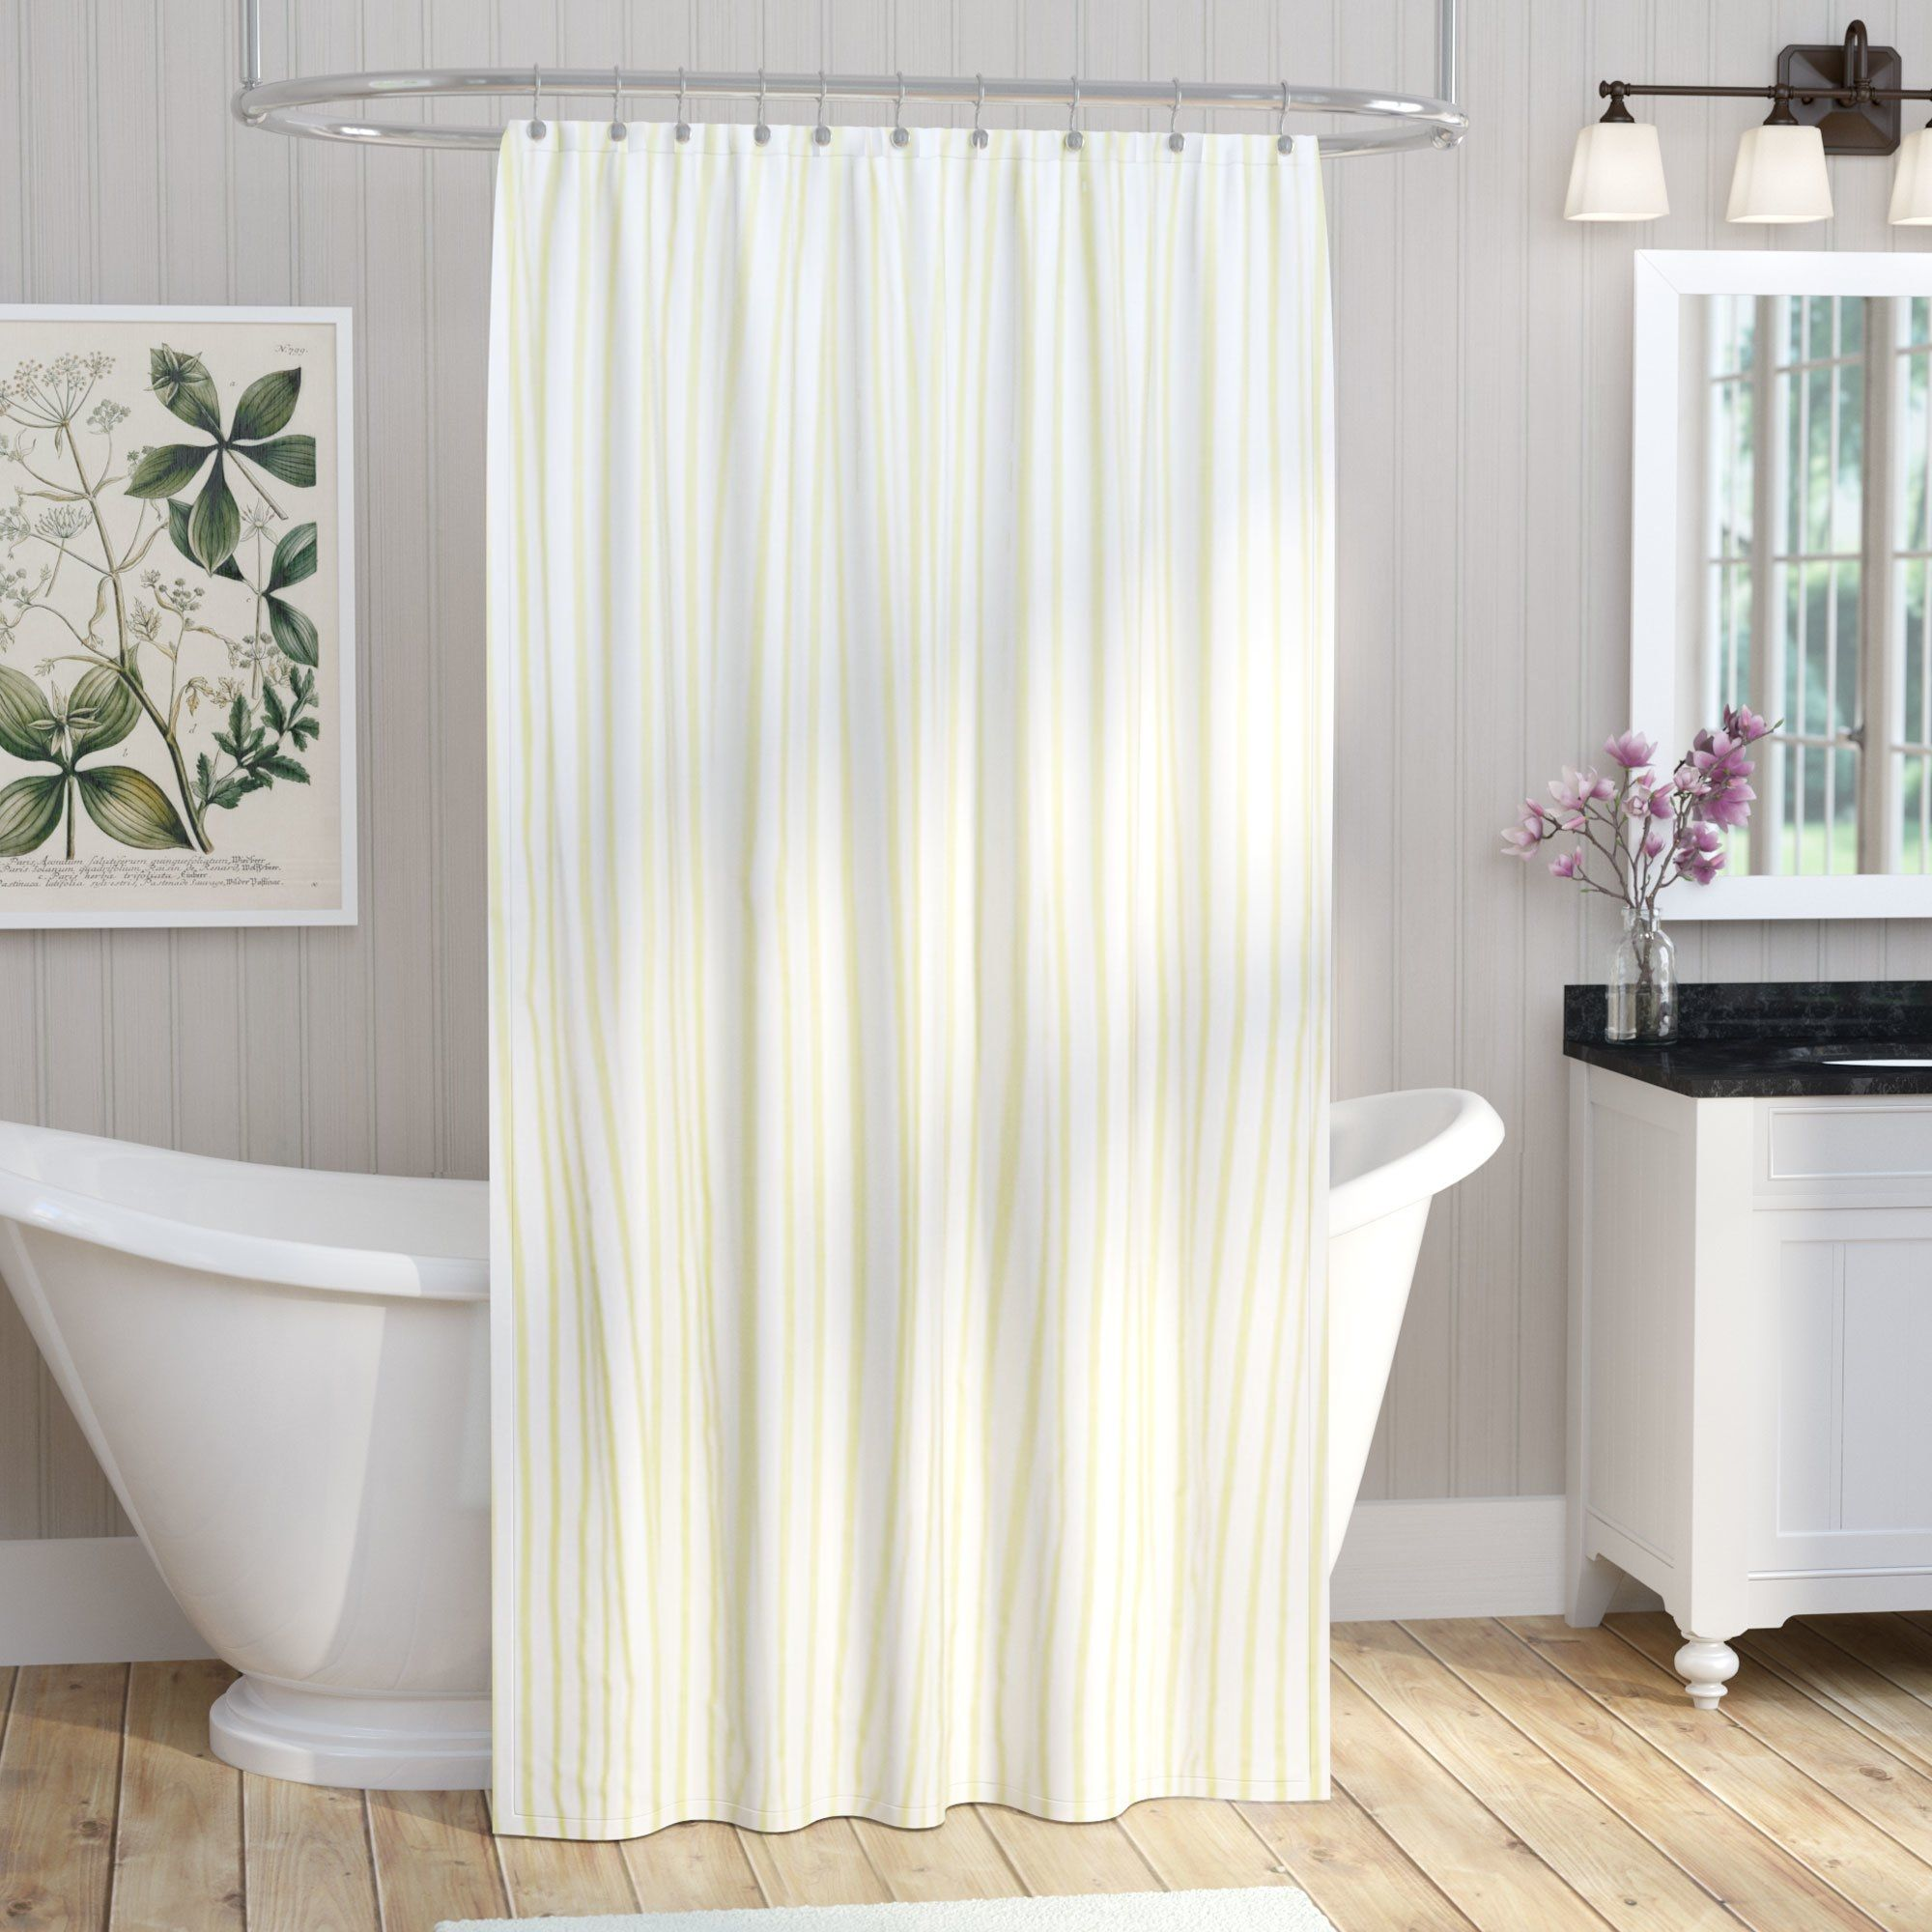 Lovely Charisma Samara Shower Curtain